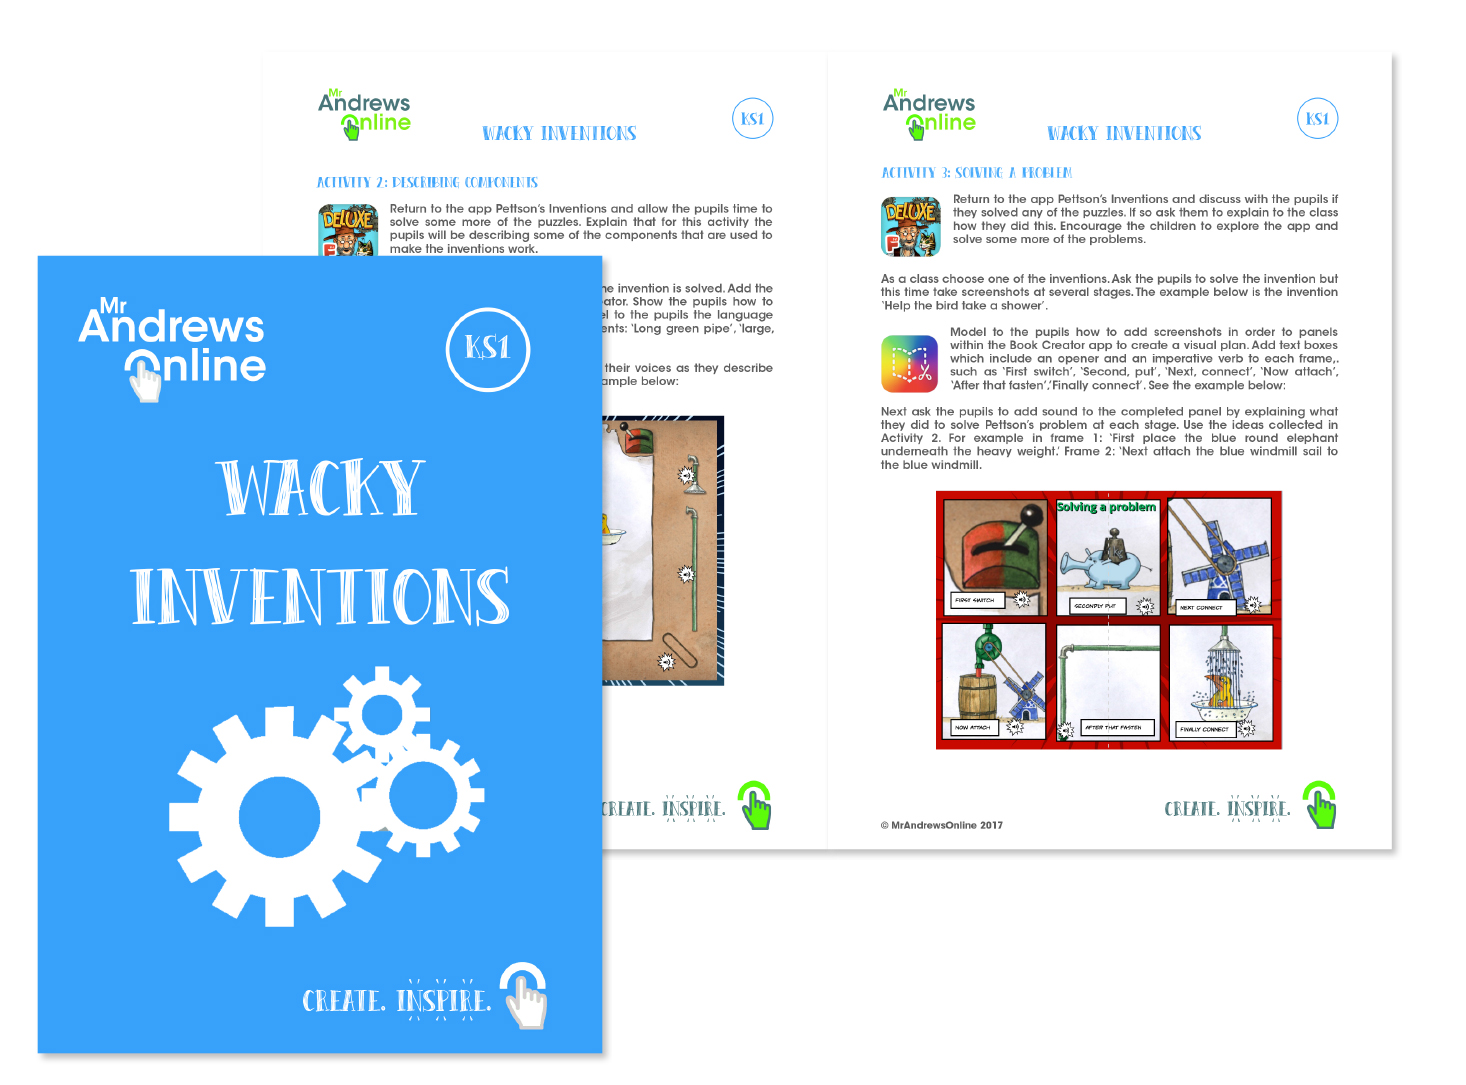 New Project: Wacky Inventions - Mr Andrews Online